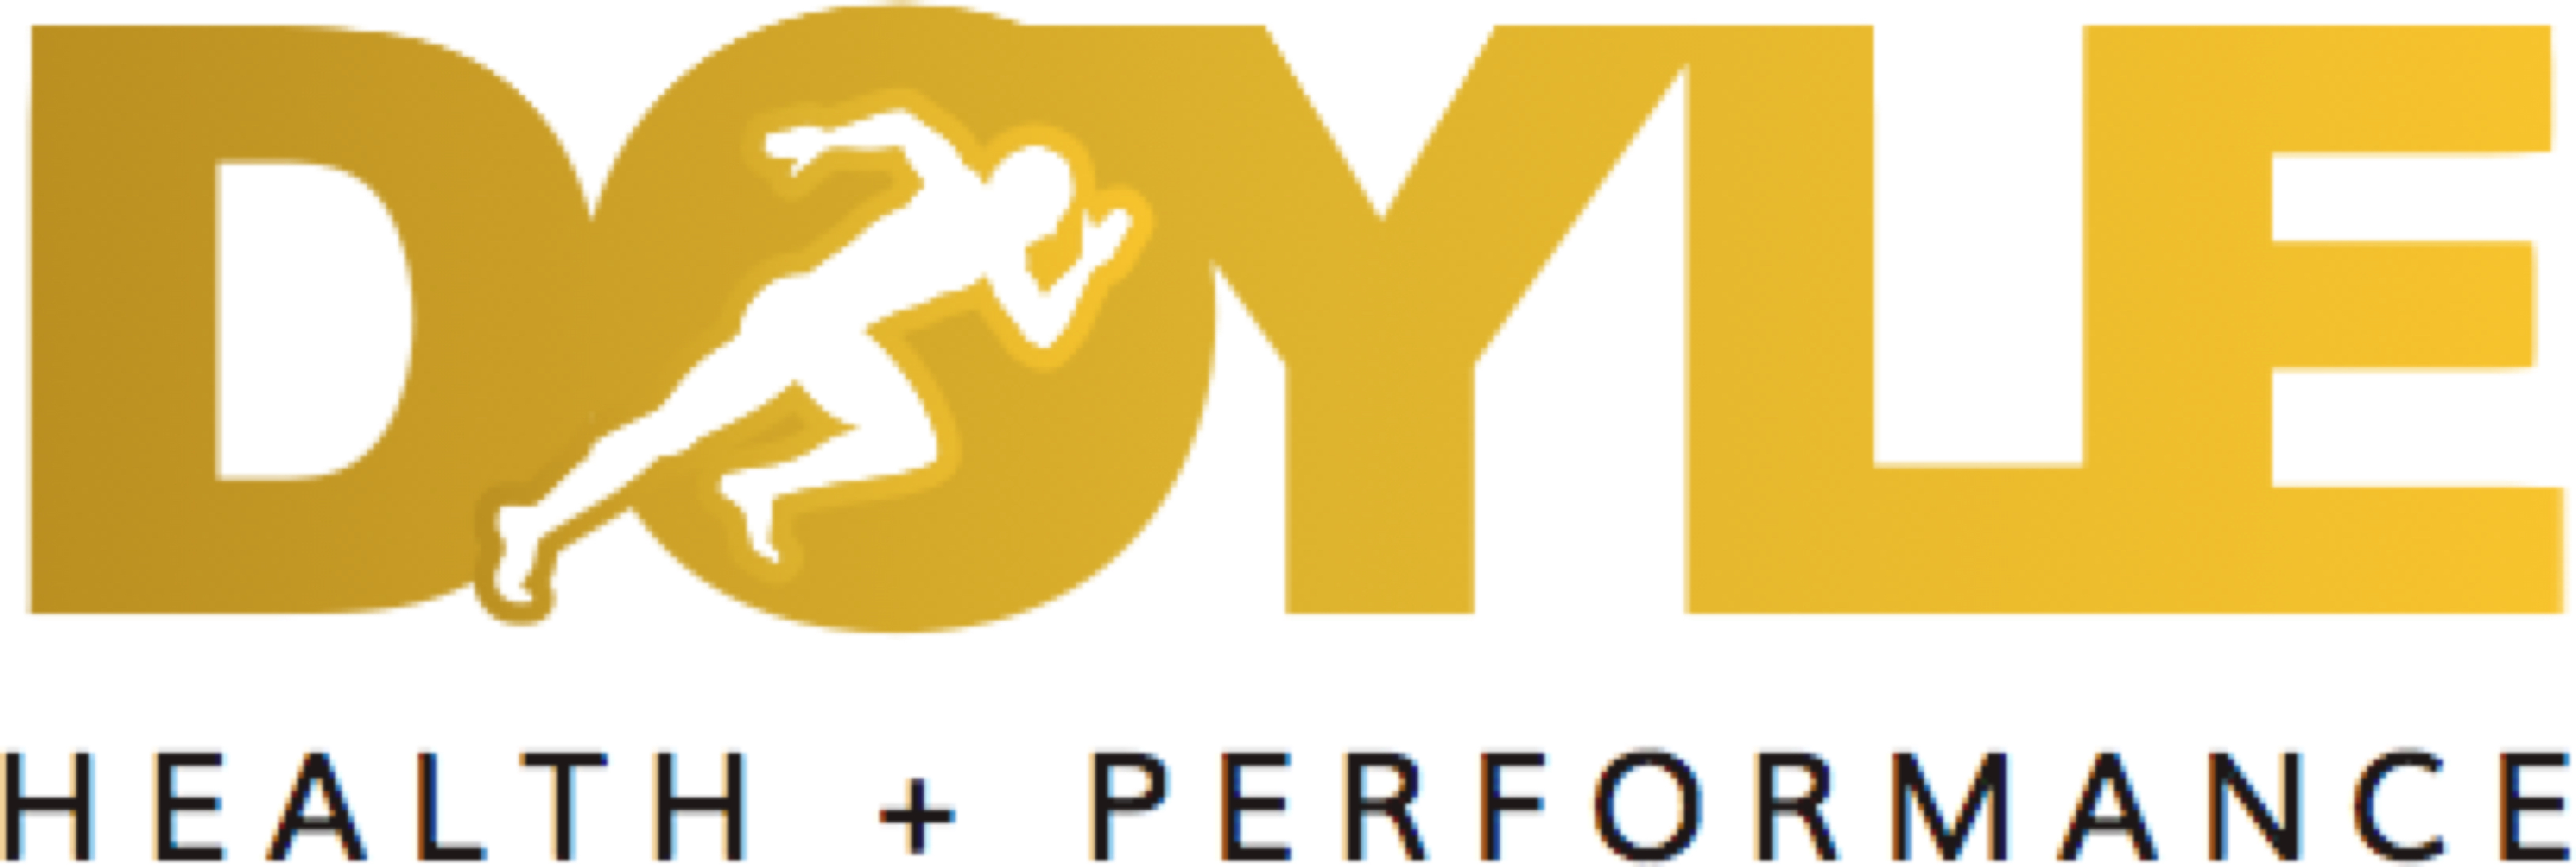 Doyle Health & Performance